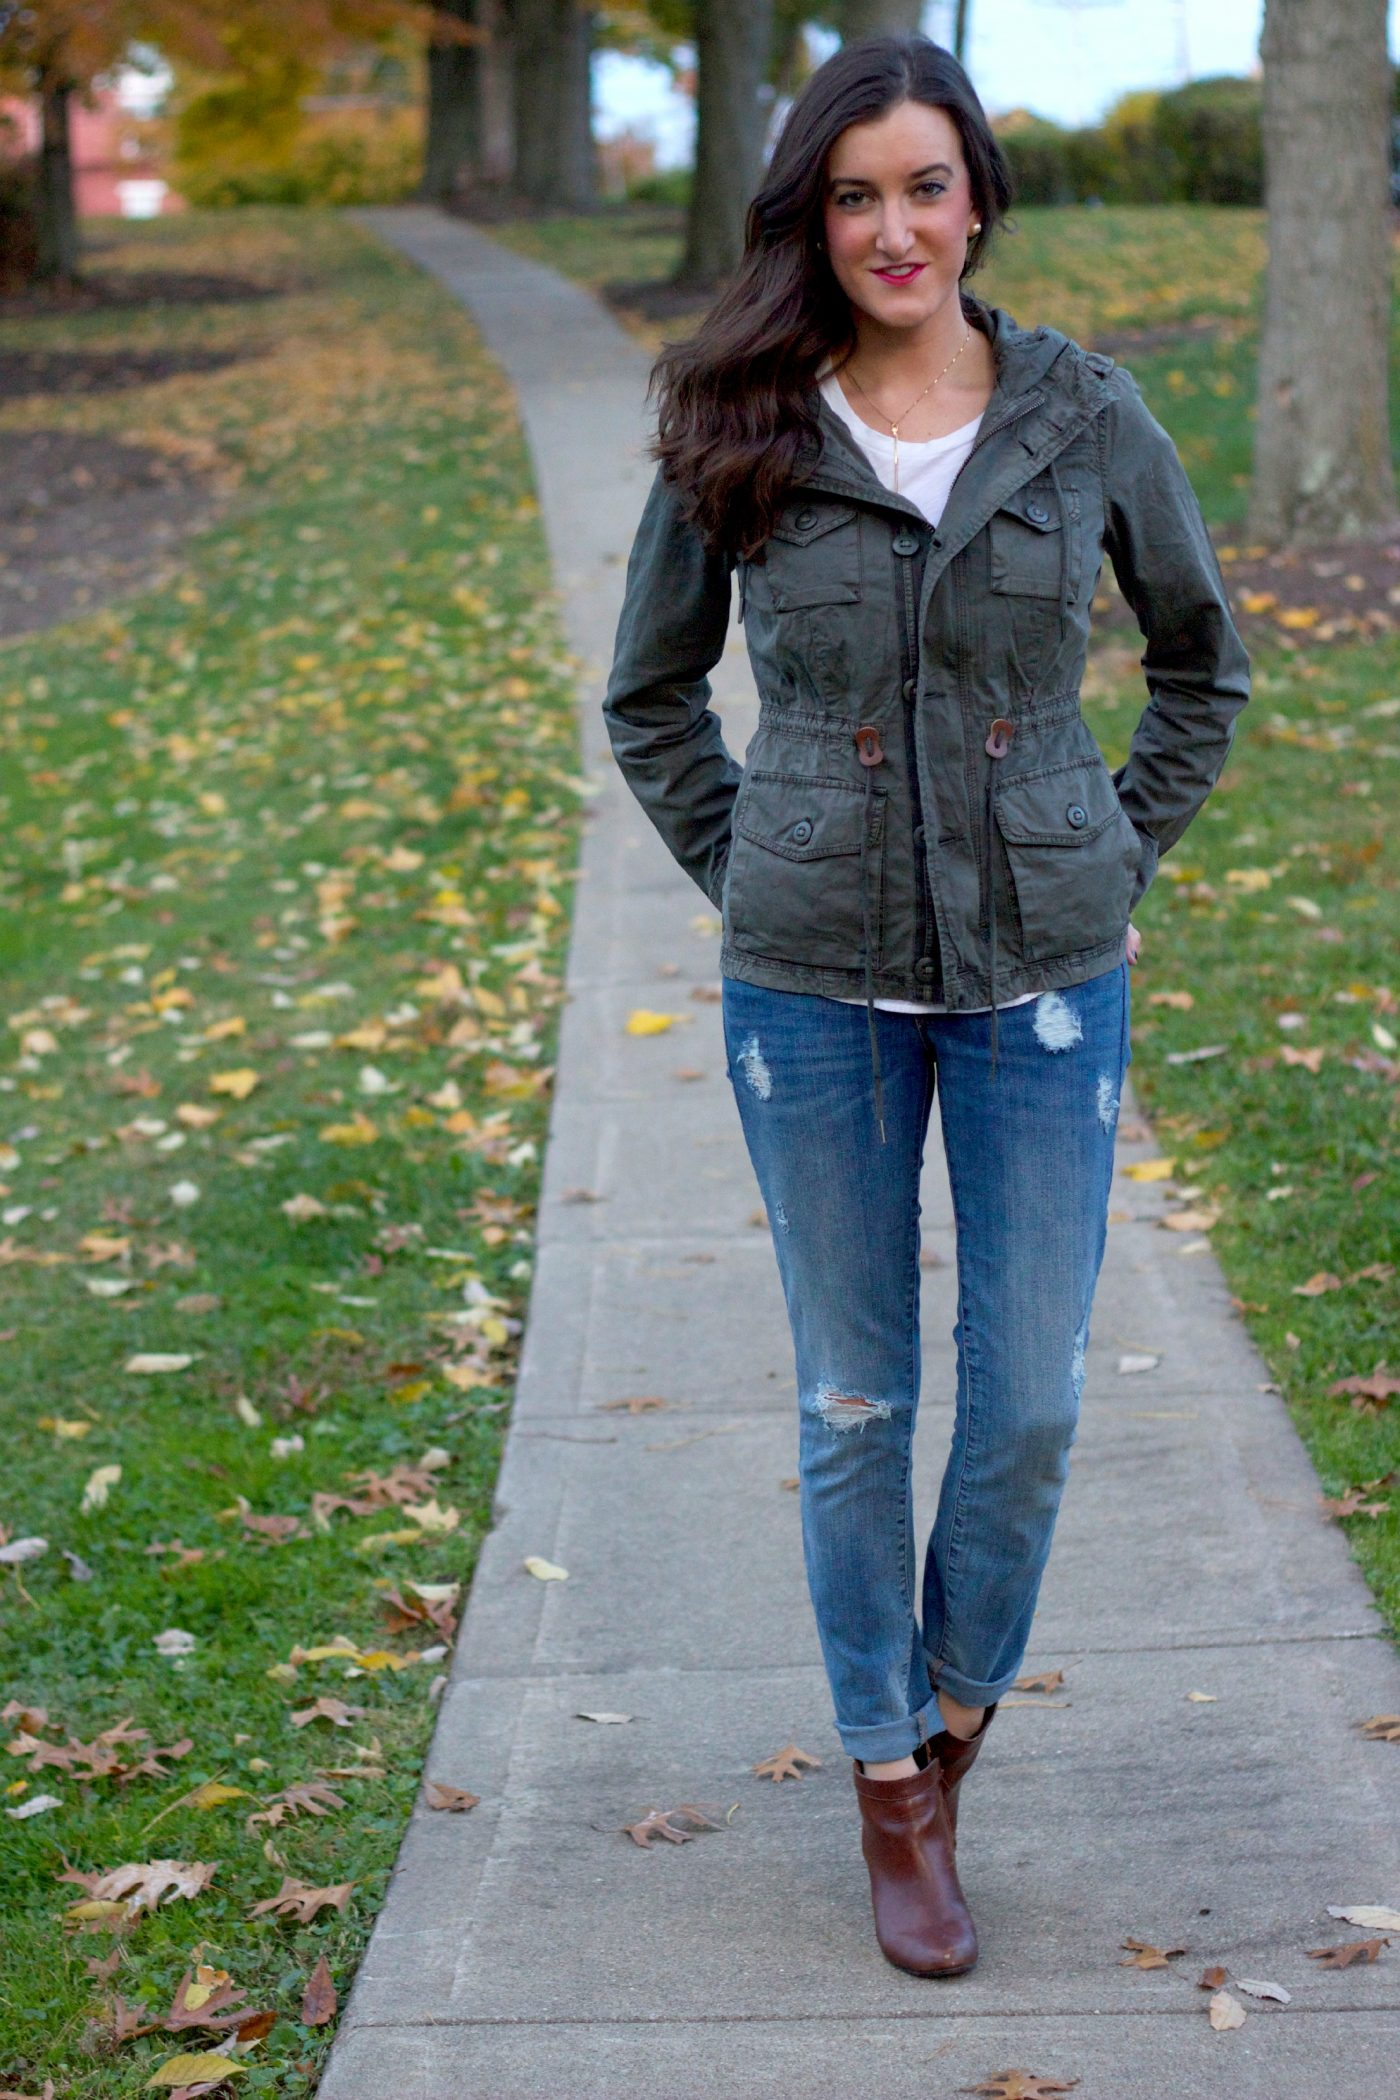 Casual Denim Outfit with Anorak Jacket